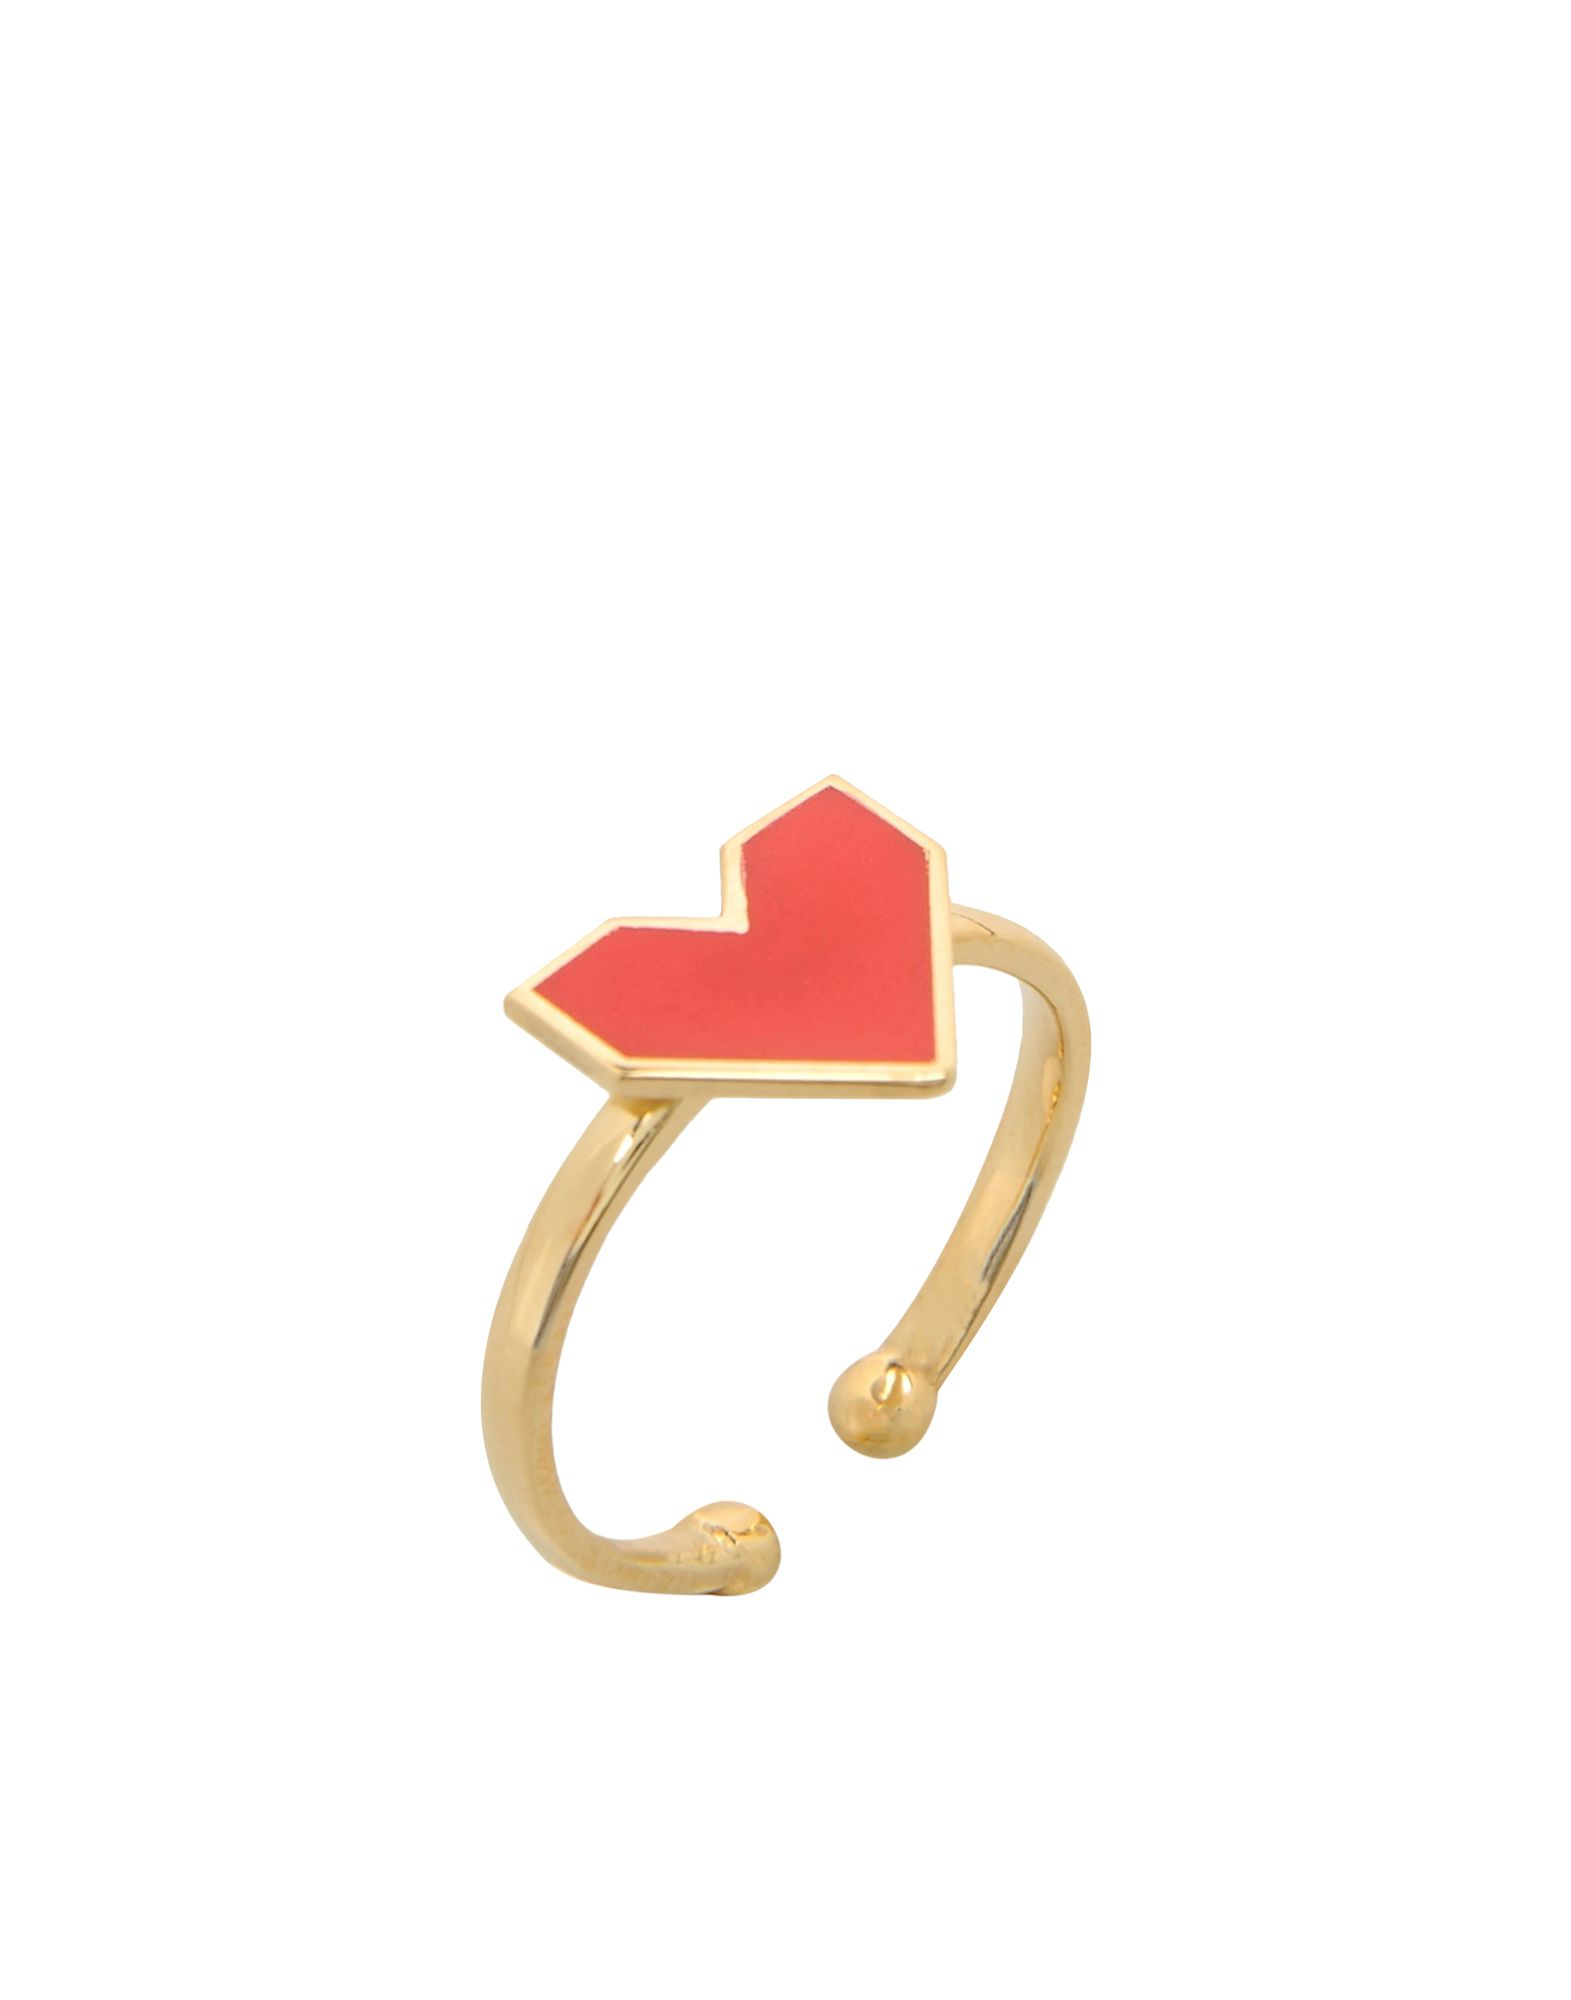 FIRST PEOPLE FIRST レディース 指輪 FUN RING RED HEART ゴールド